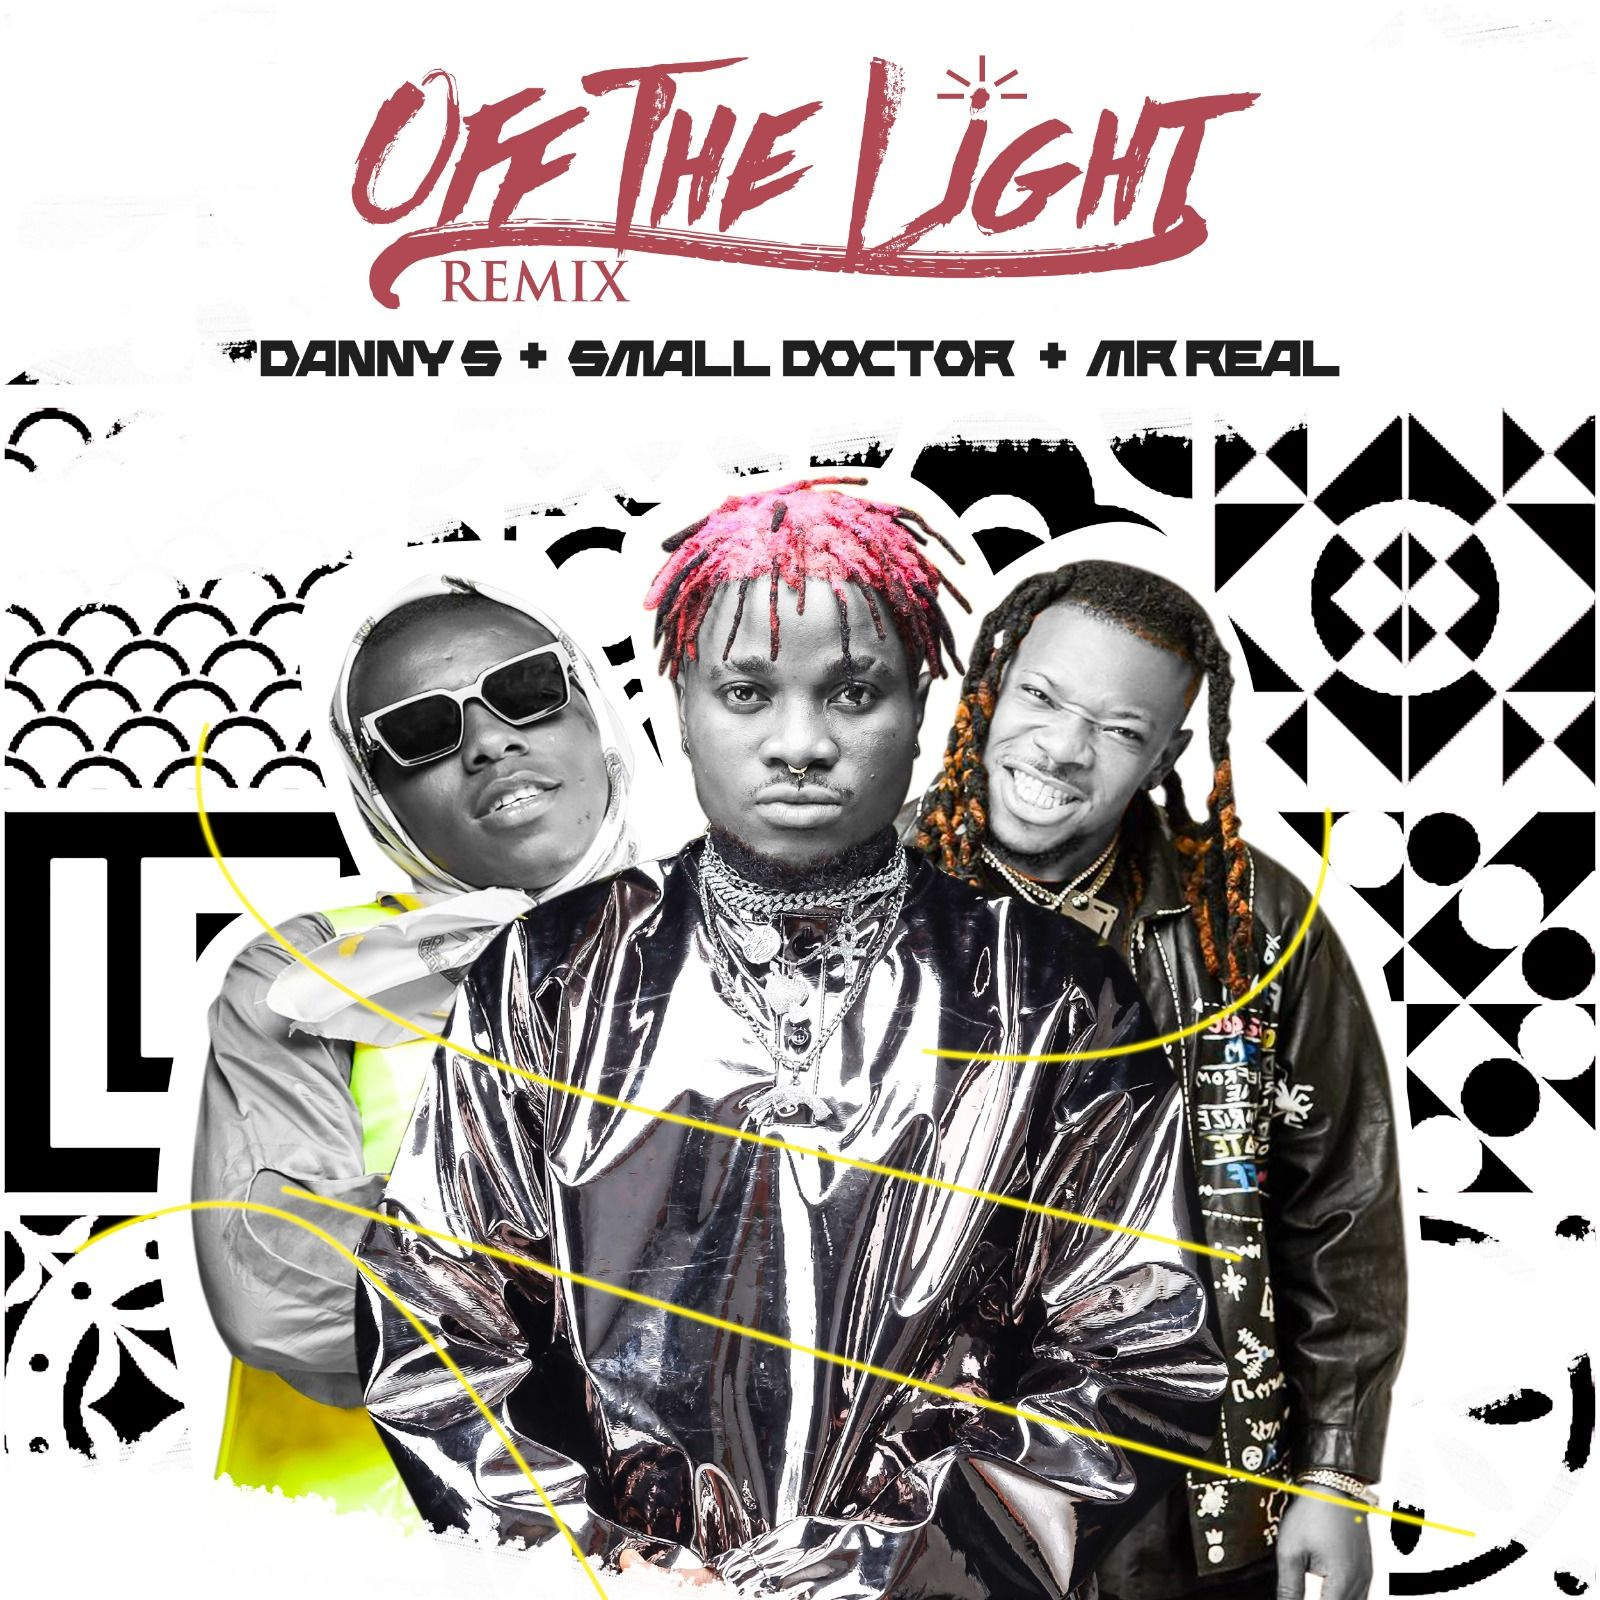 Danny S Ft. Small Doctor & Mr Real - Off The Light (Remix)